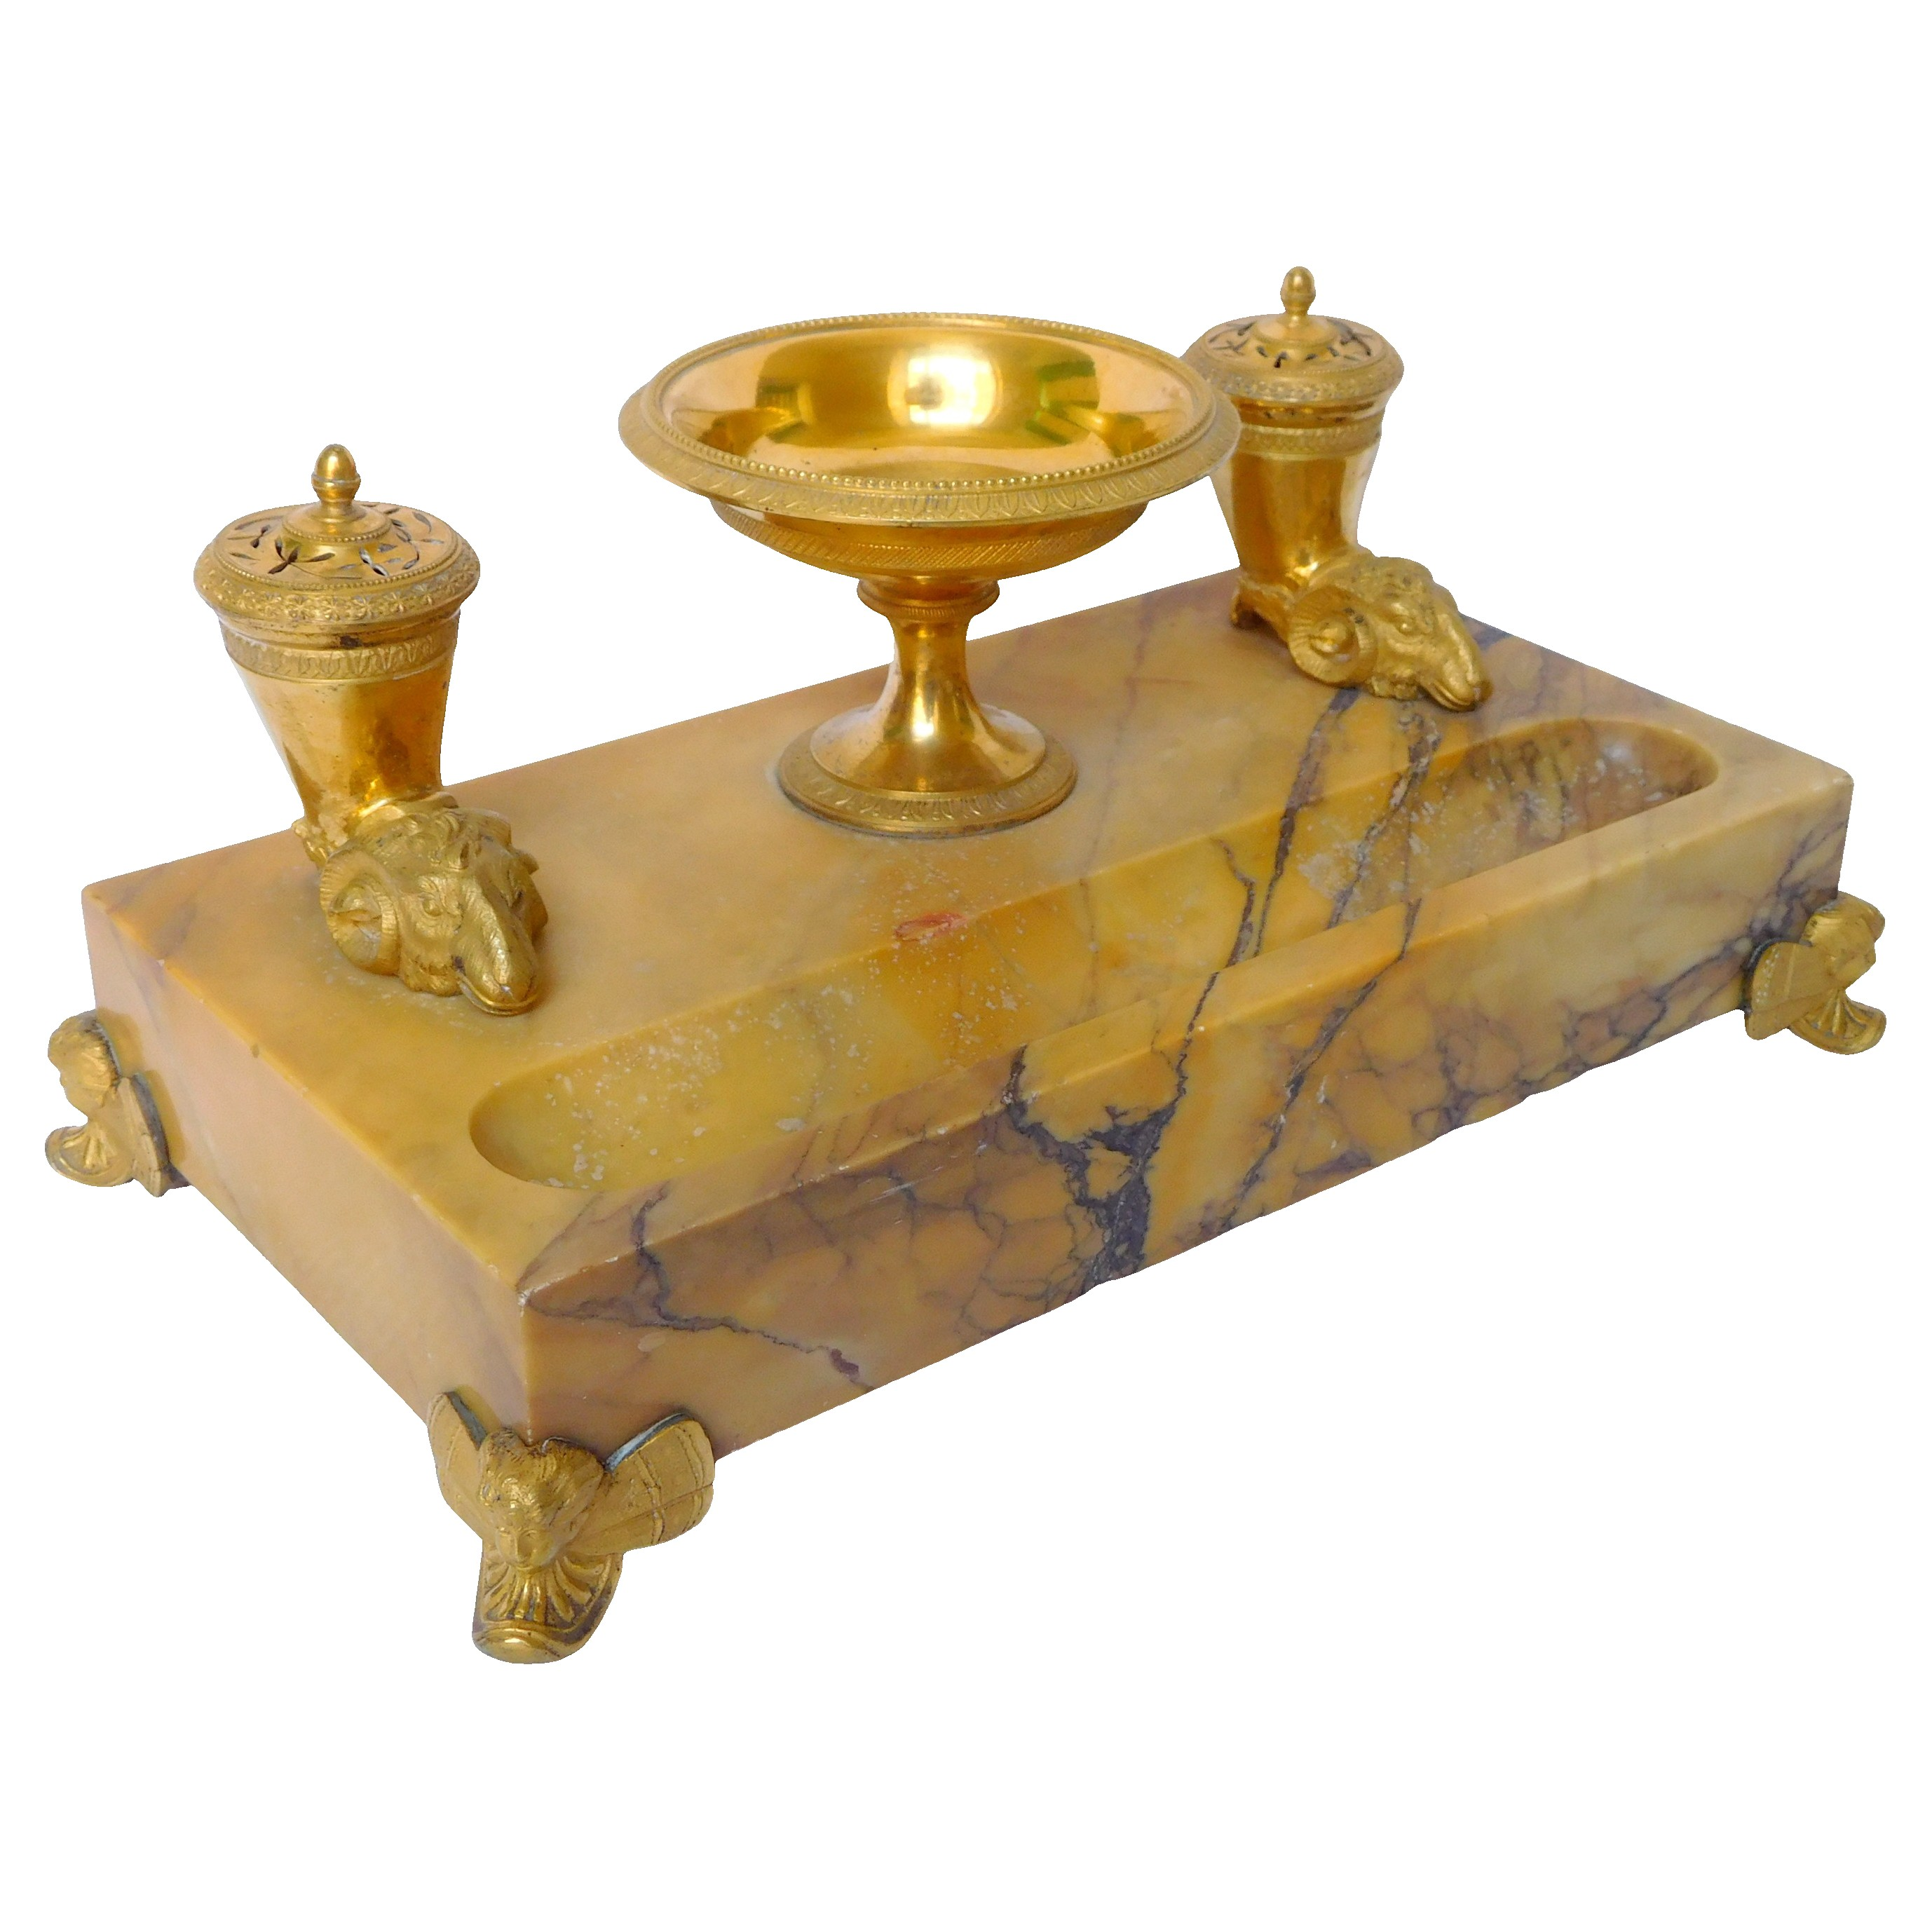 Empire marble and ormolu inkwell, Charles X production - early 19th century